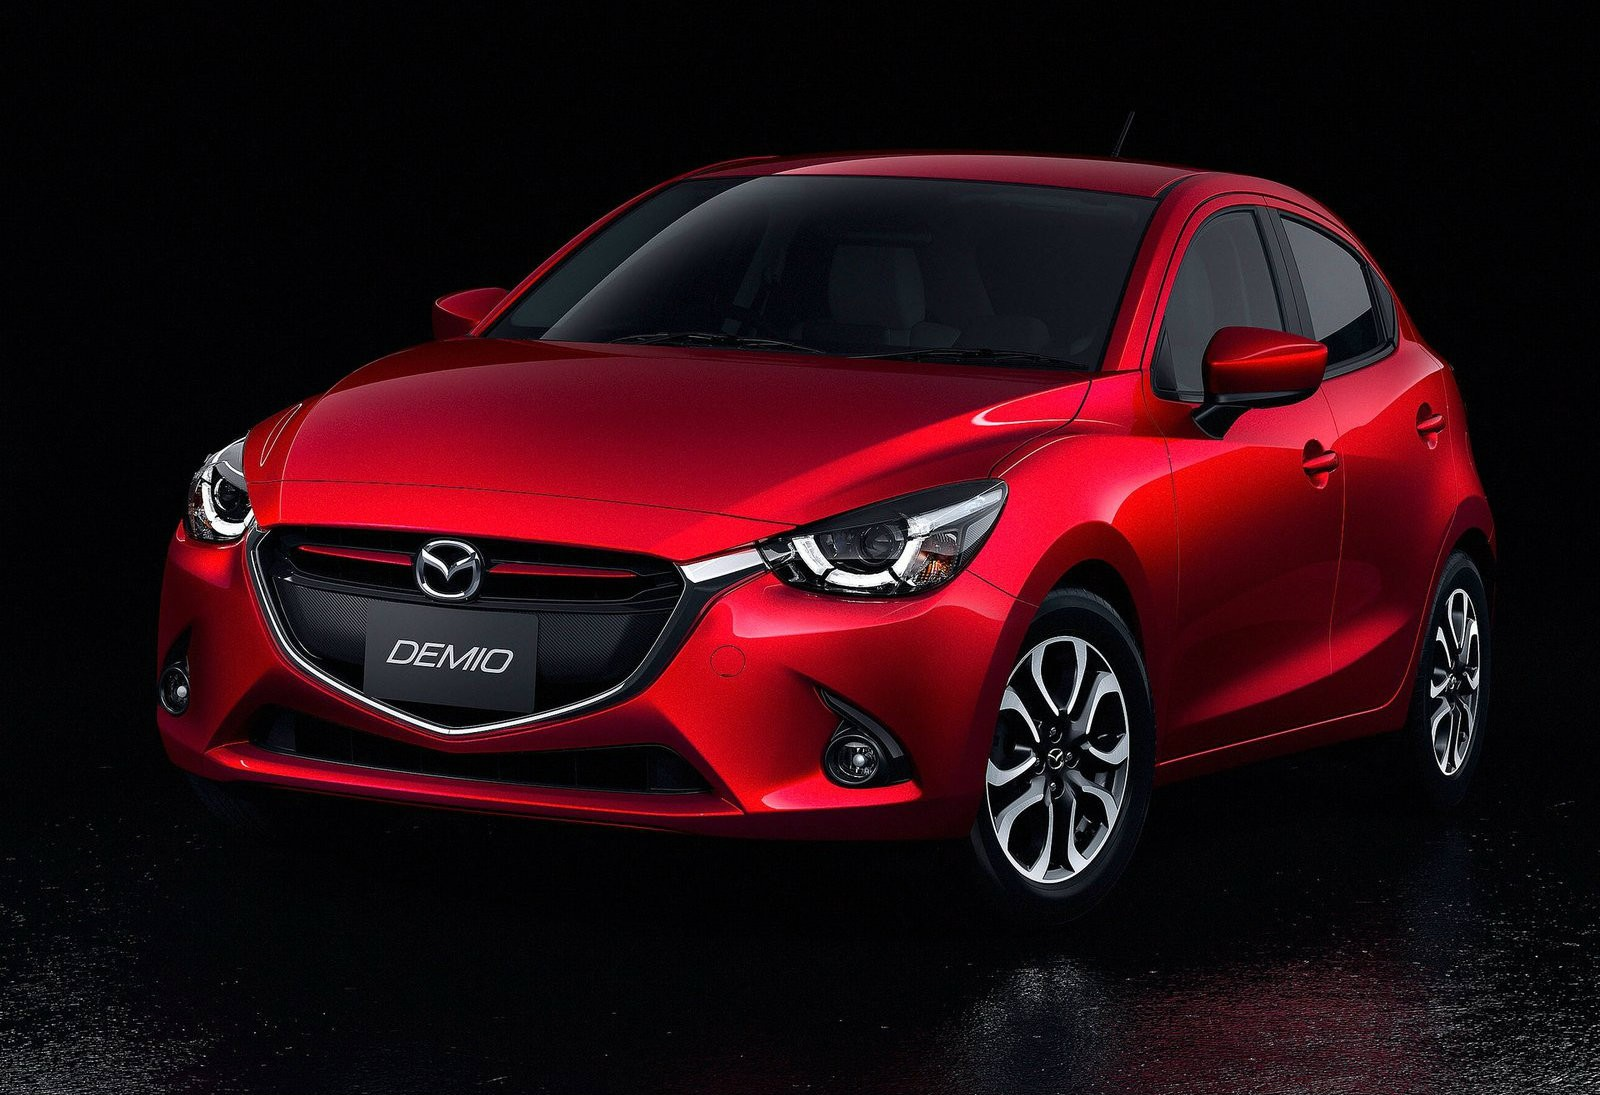 2015 mazda2 sports launch edition bundles a lot for 14 995 autoevolution. Black Bedroom Furniture Sets. Home Design Ideas